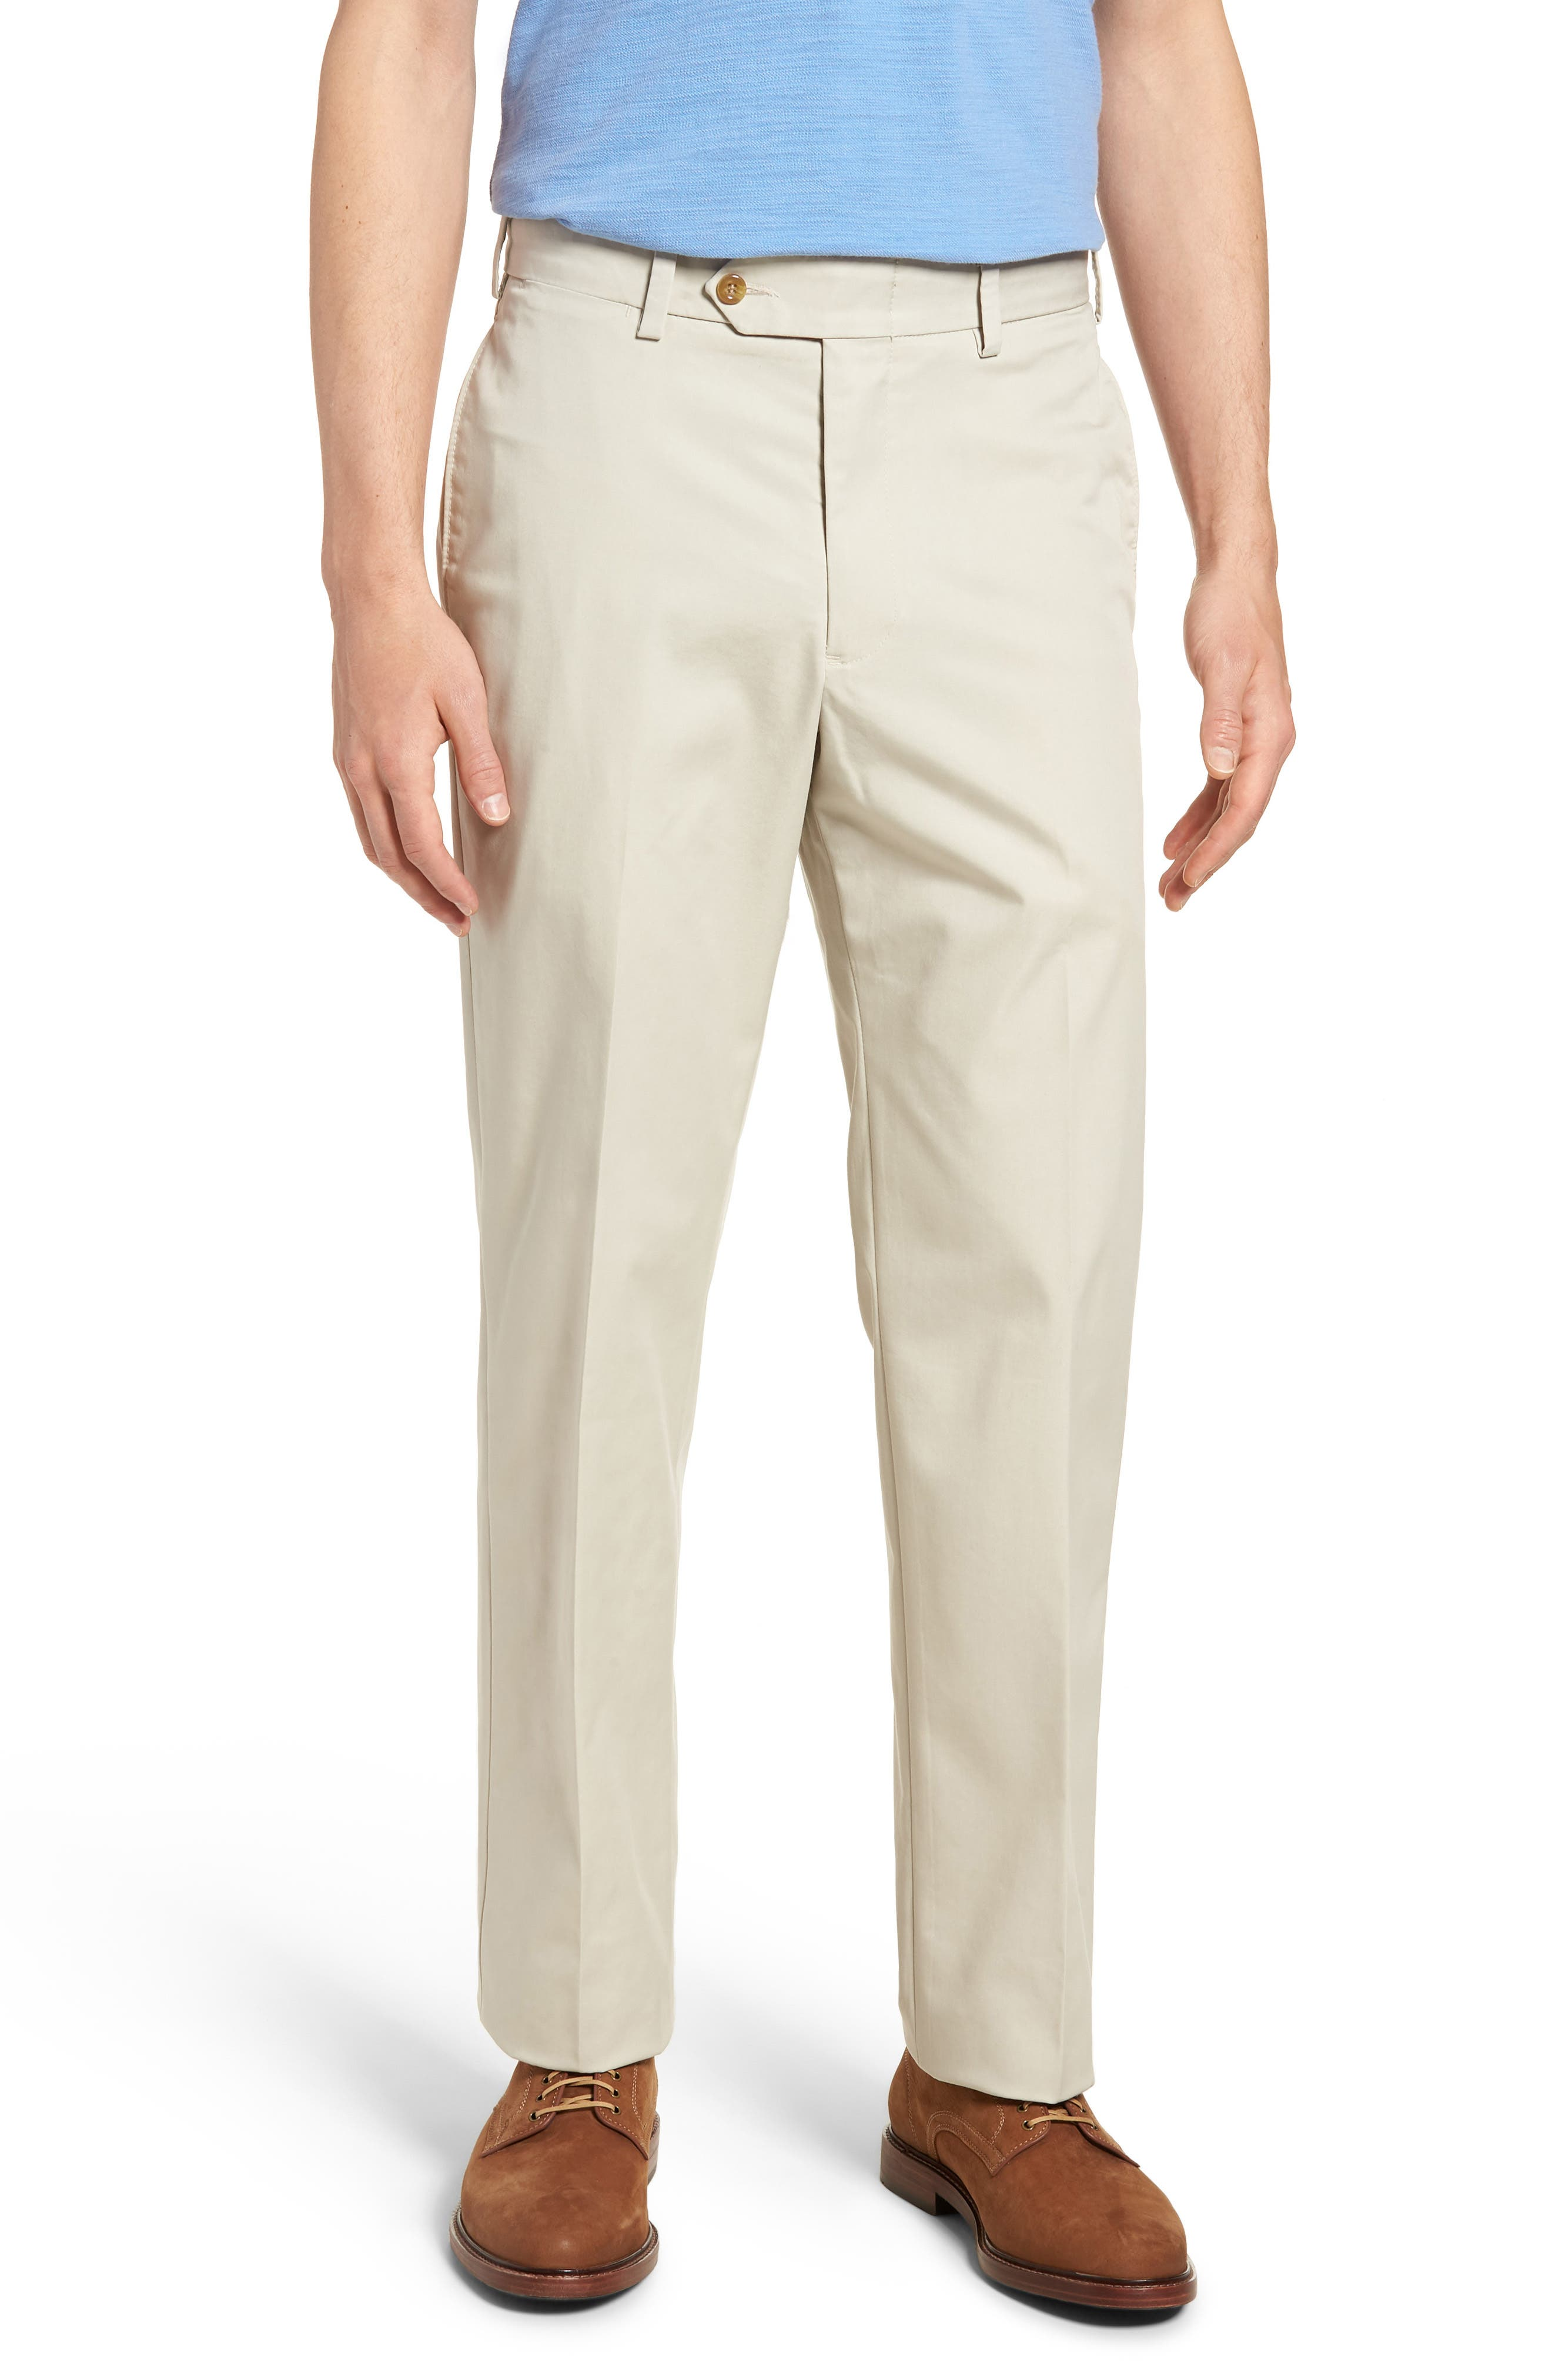 M2 Classic Fit Flat Front Travel Twill Pants,                             Main thumbnail 1, color,                             Cement